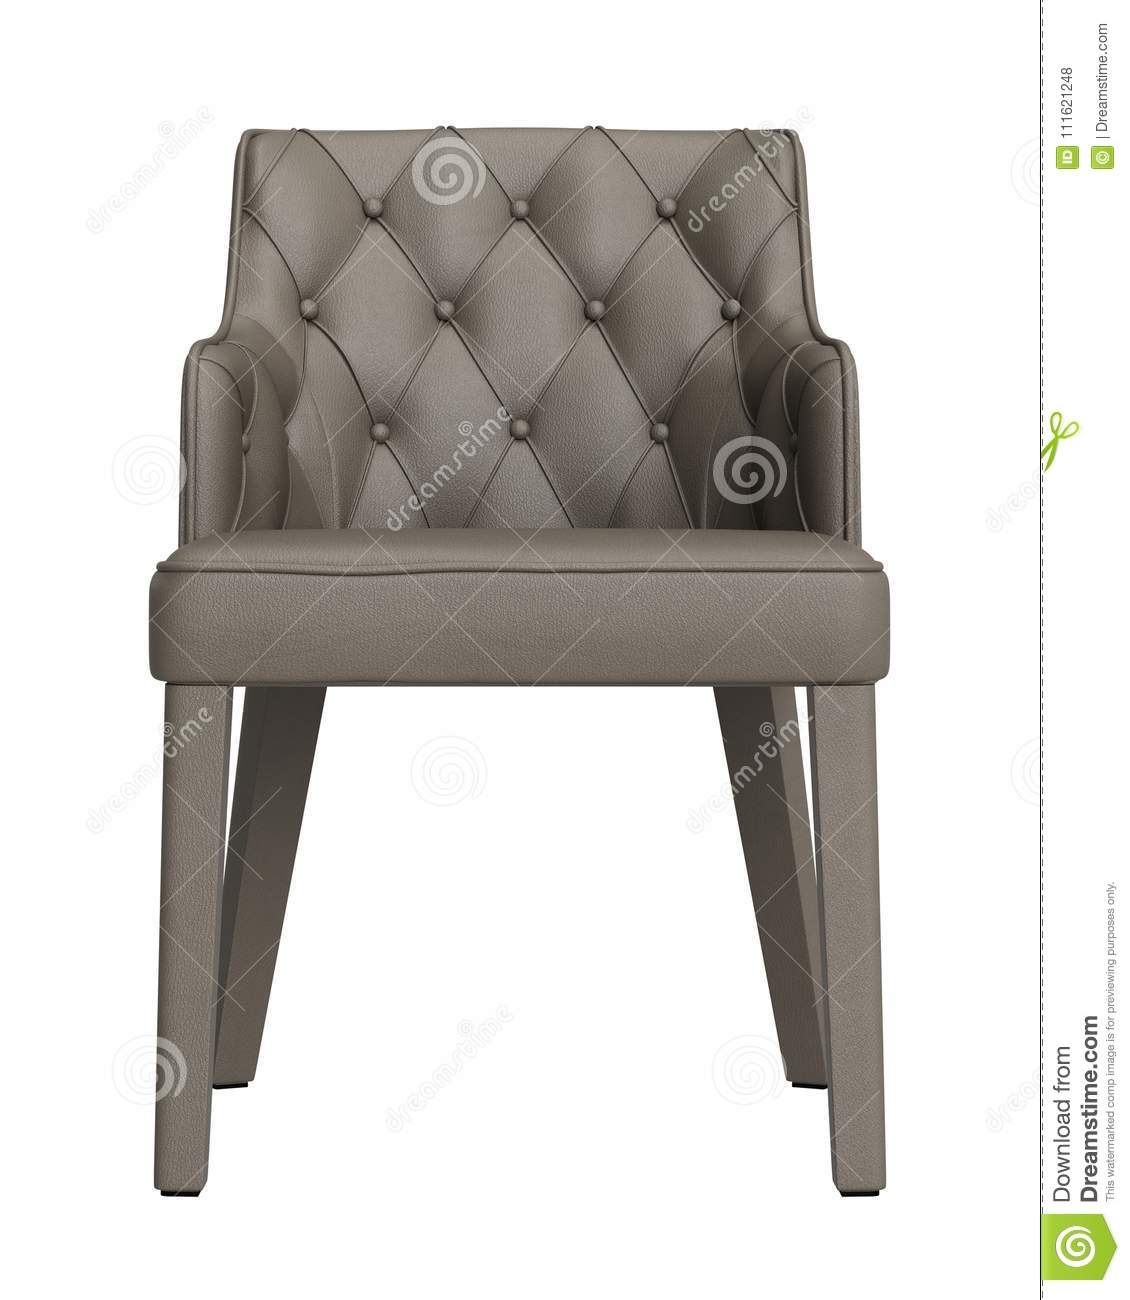 Classic Tufted Chair Isolated On White Background Brown